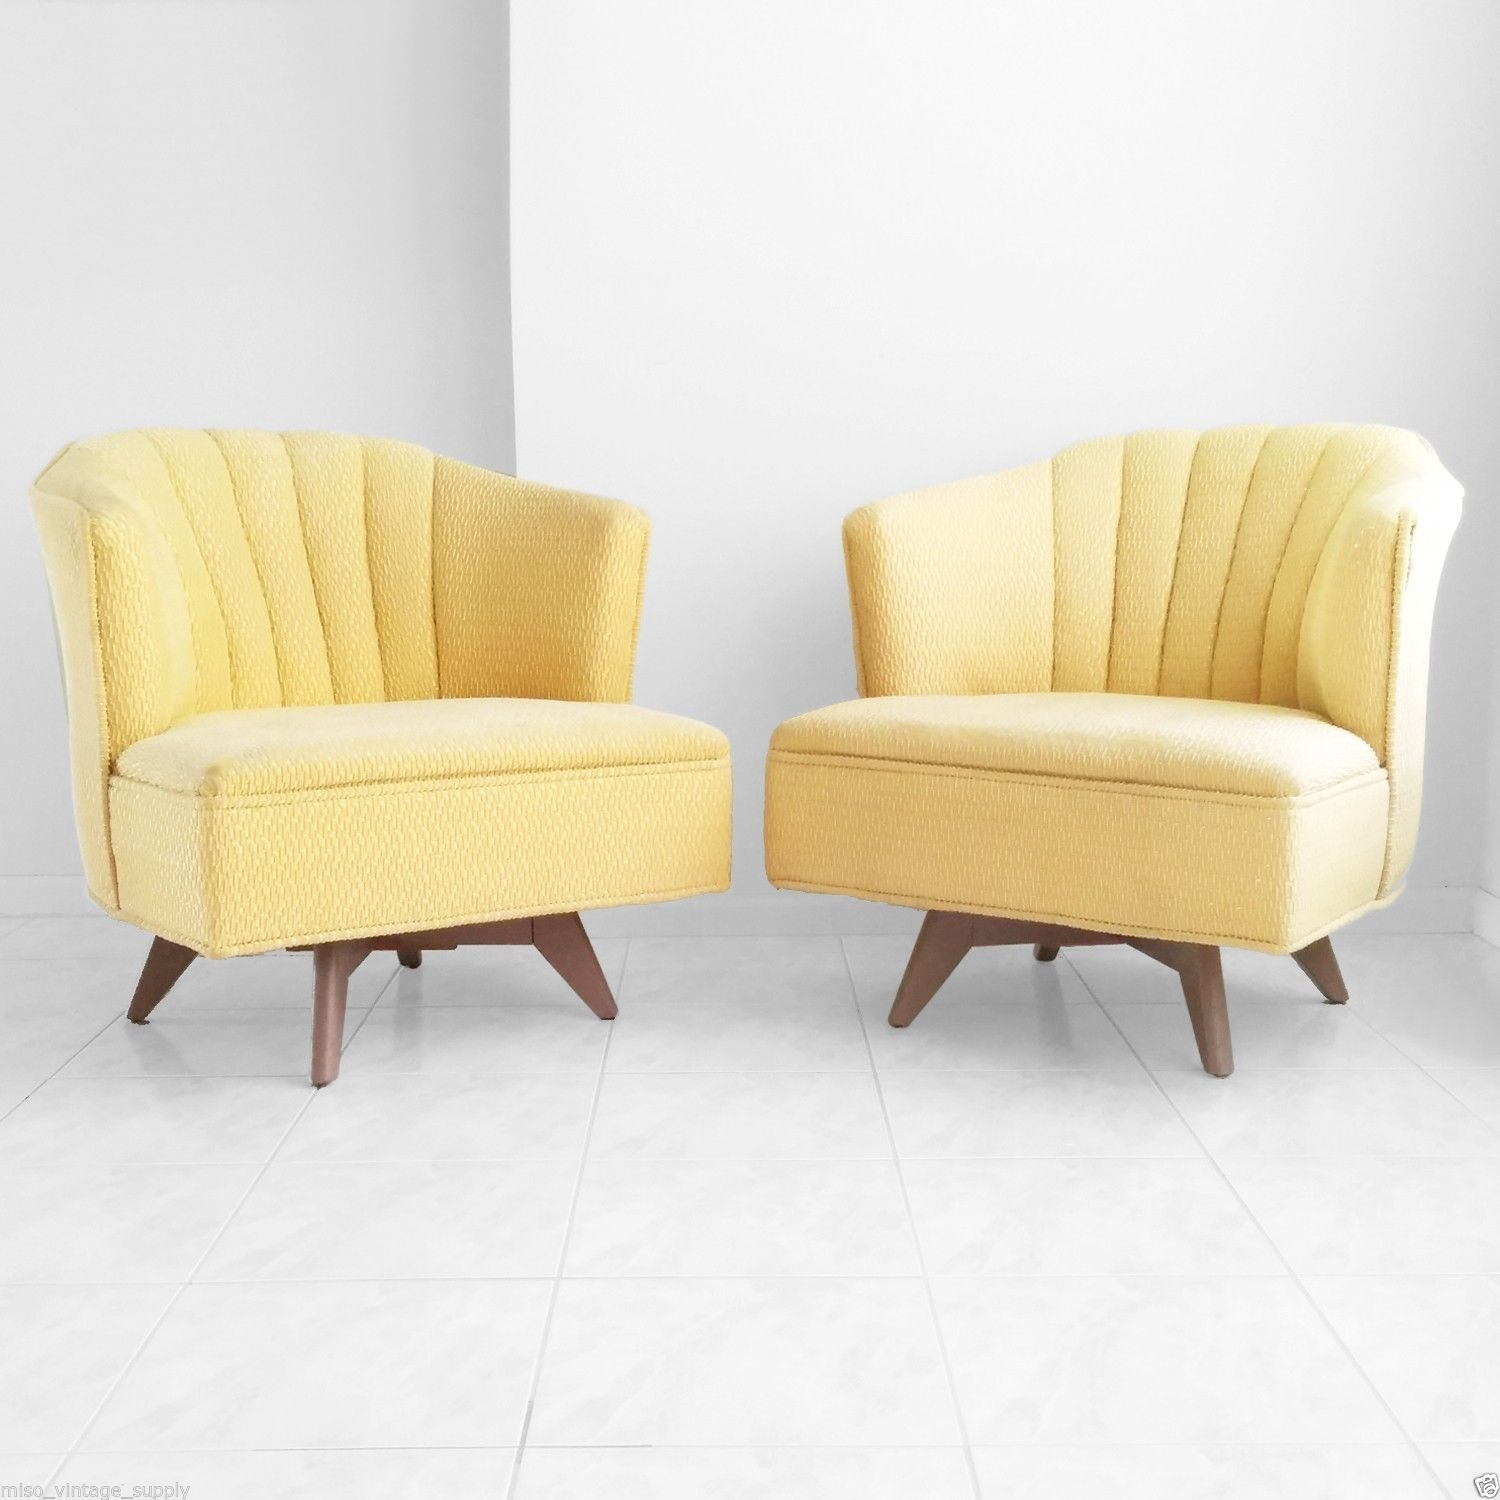 Vtg 2 Mid Century Modern 1950s Atomic Deco Channel Swivel Chairs